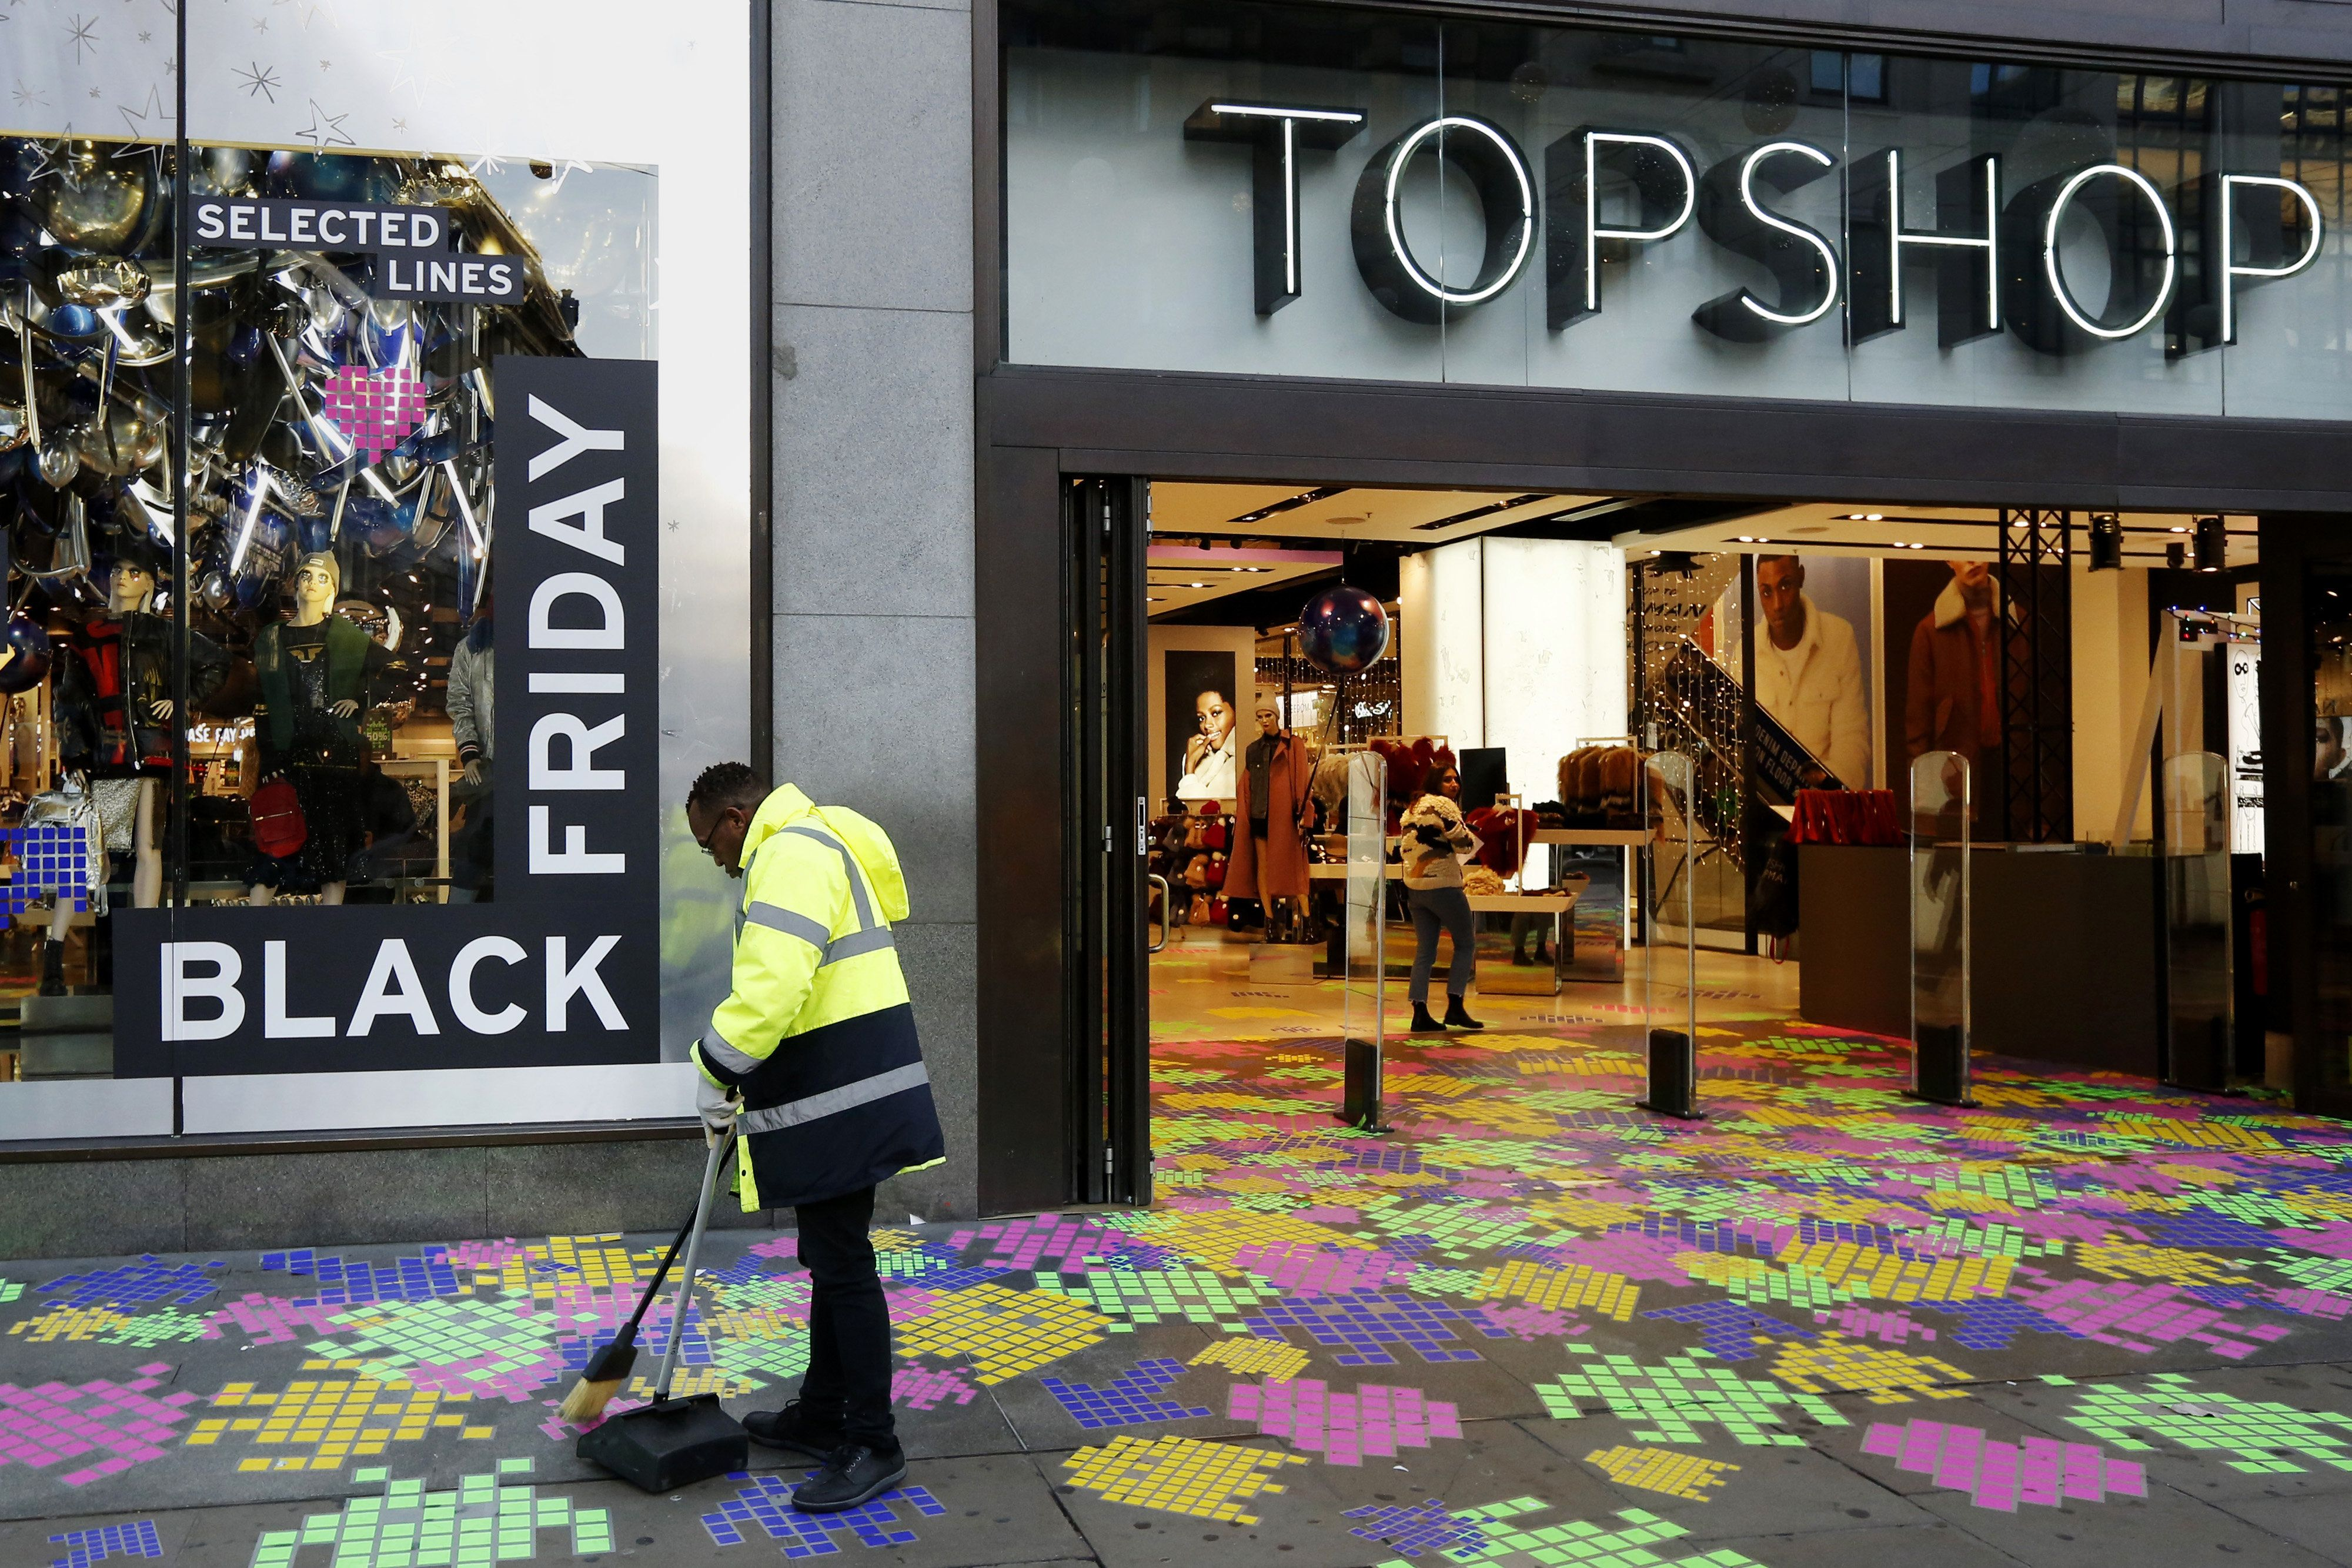 Topshop Made Its Changing Rooms Gender Neutral Months Ago - But Some Staff Didn't Get The